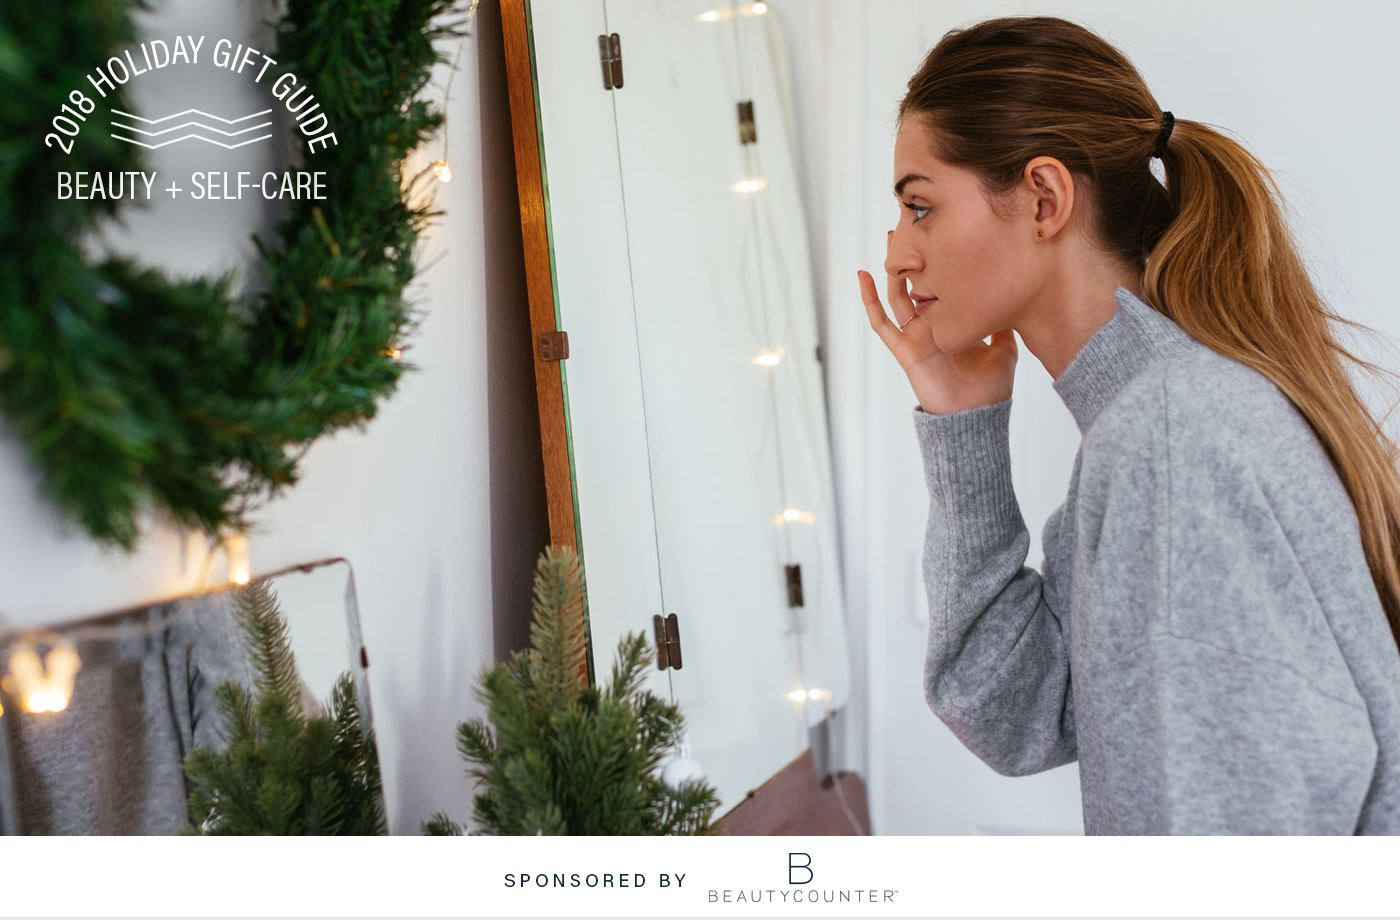 The Definitive Self-Care Holiday Gift Guide From A Clean Beauty Connoisseur